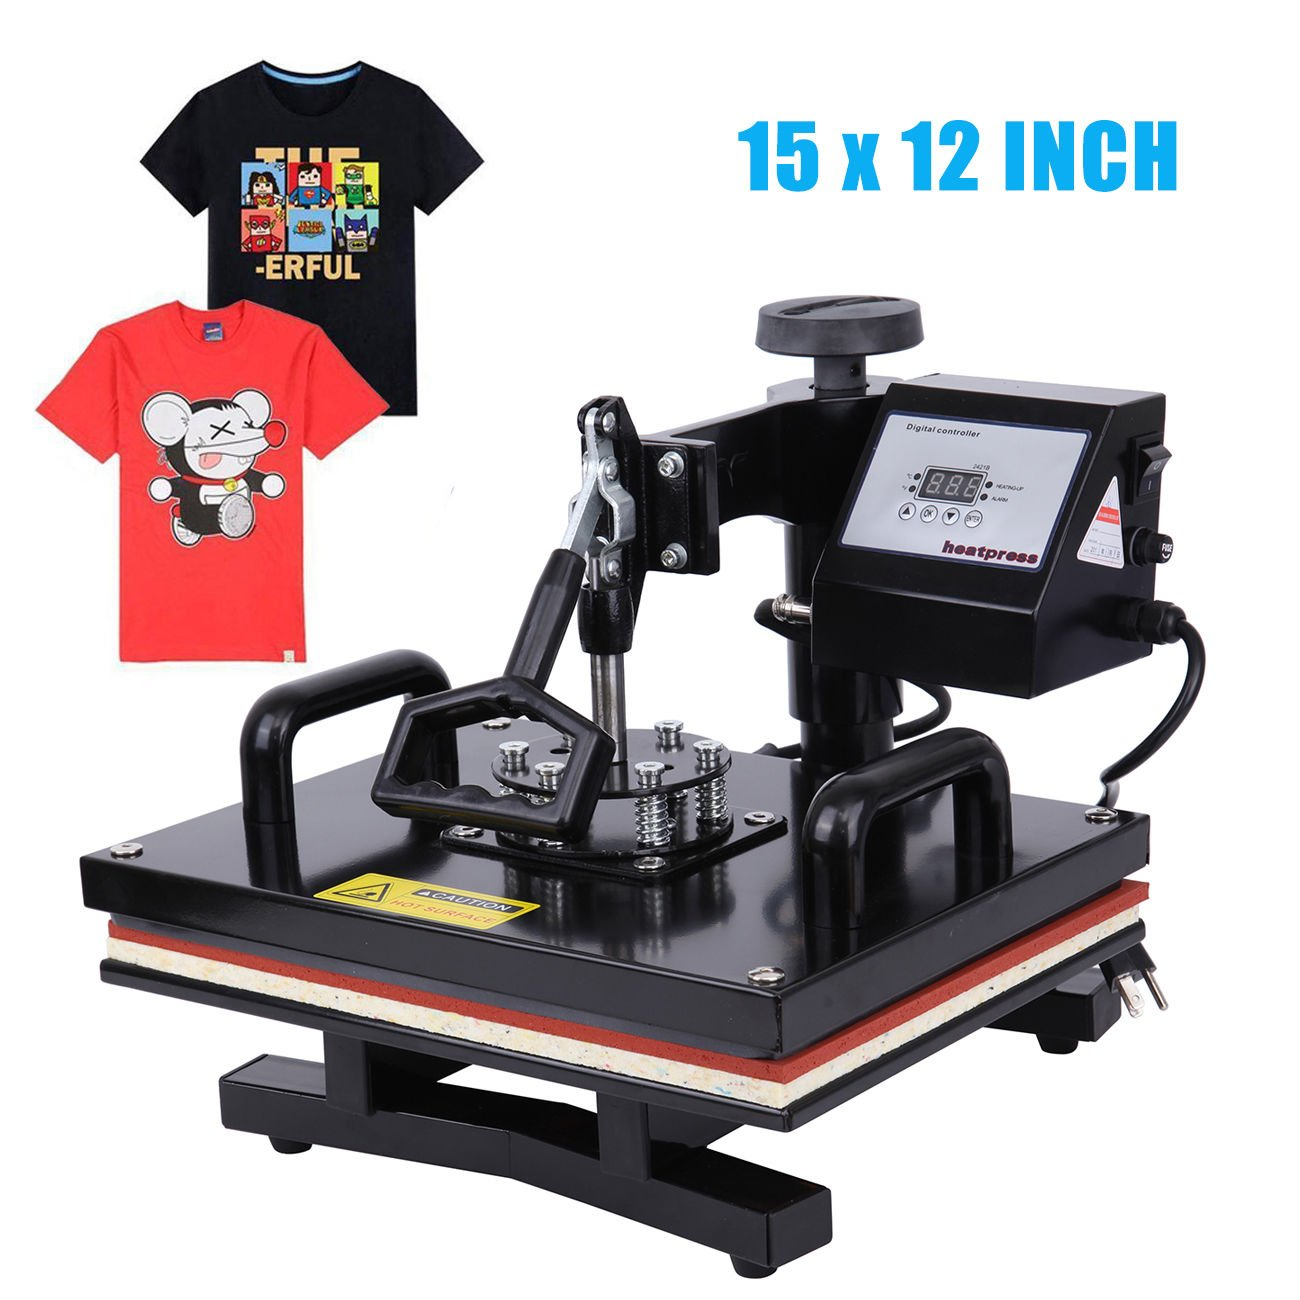 Ridgeyard 110V 15.6 inch by 12.4 inch Digital LCD Display Pro 360 Degree Swing-away Sublimation Heat Transfer Press Machine for T-Shirt (Single)